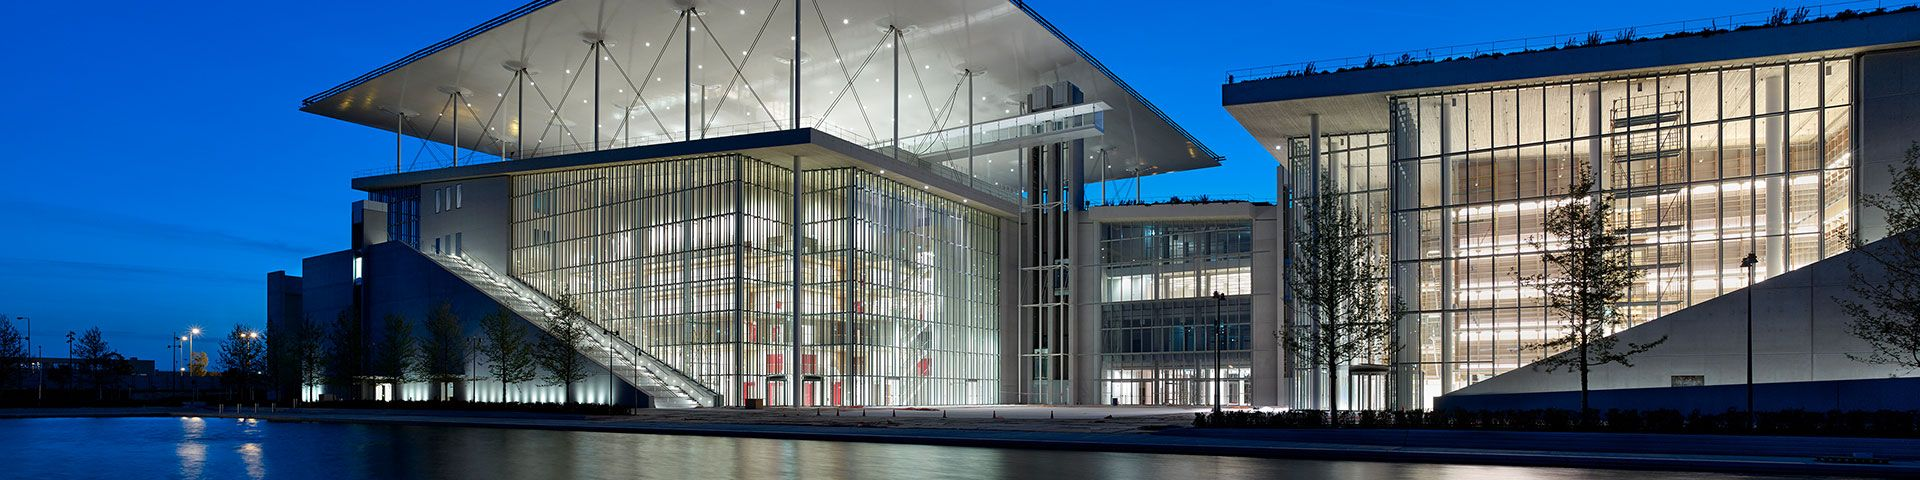 The Stavros Niarchos Foundation Cultural Center is awarded the European Solar Prize 2017 - Εικόνα